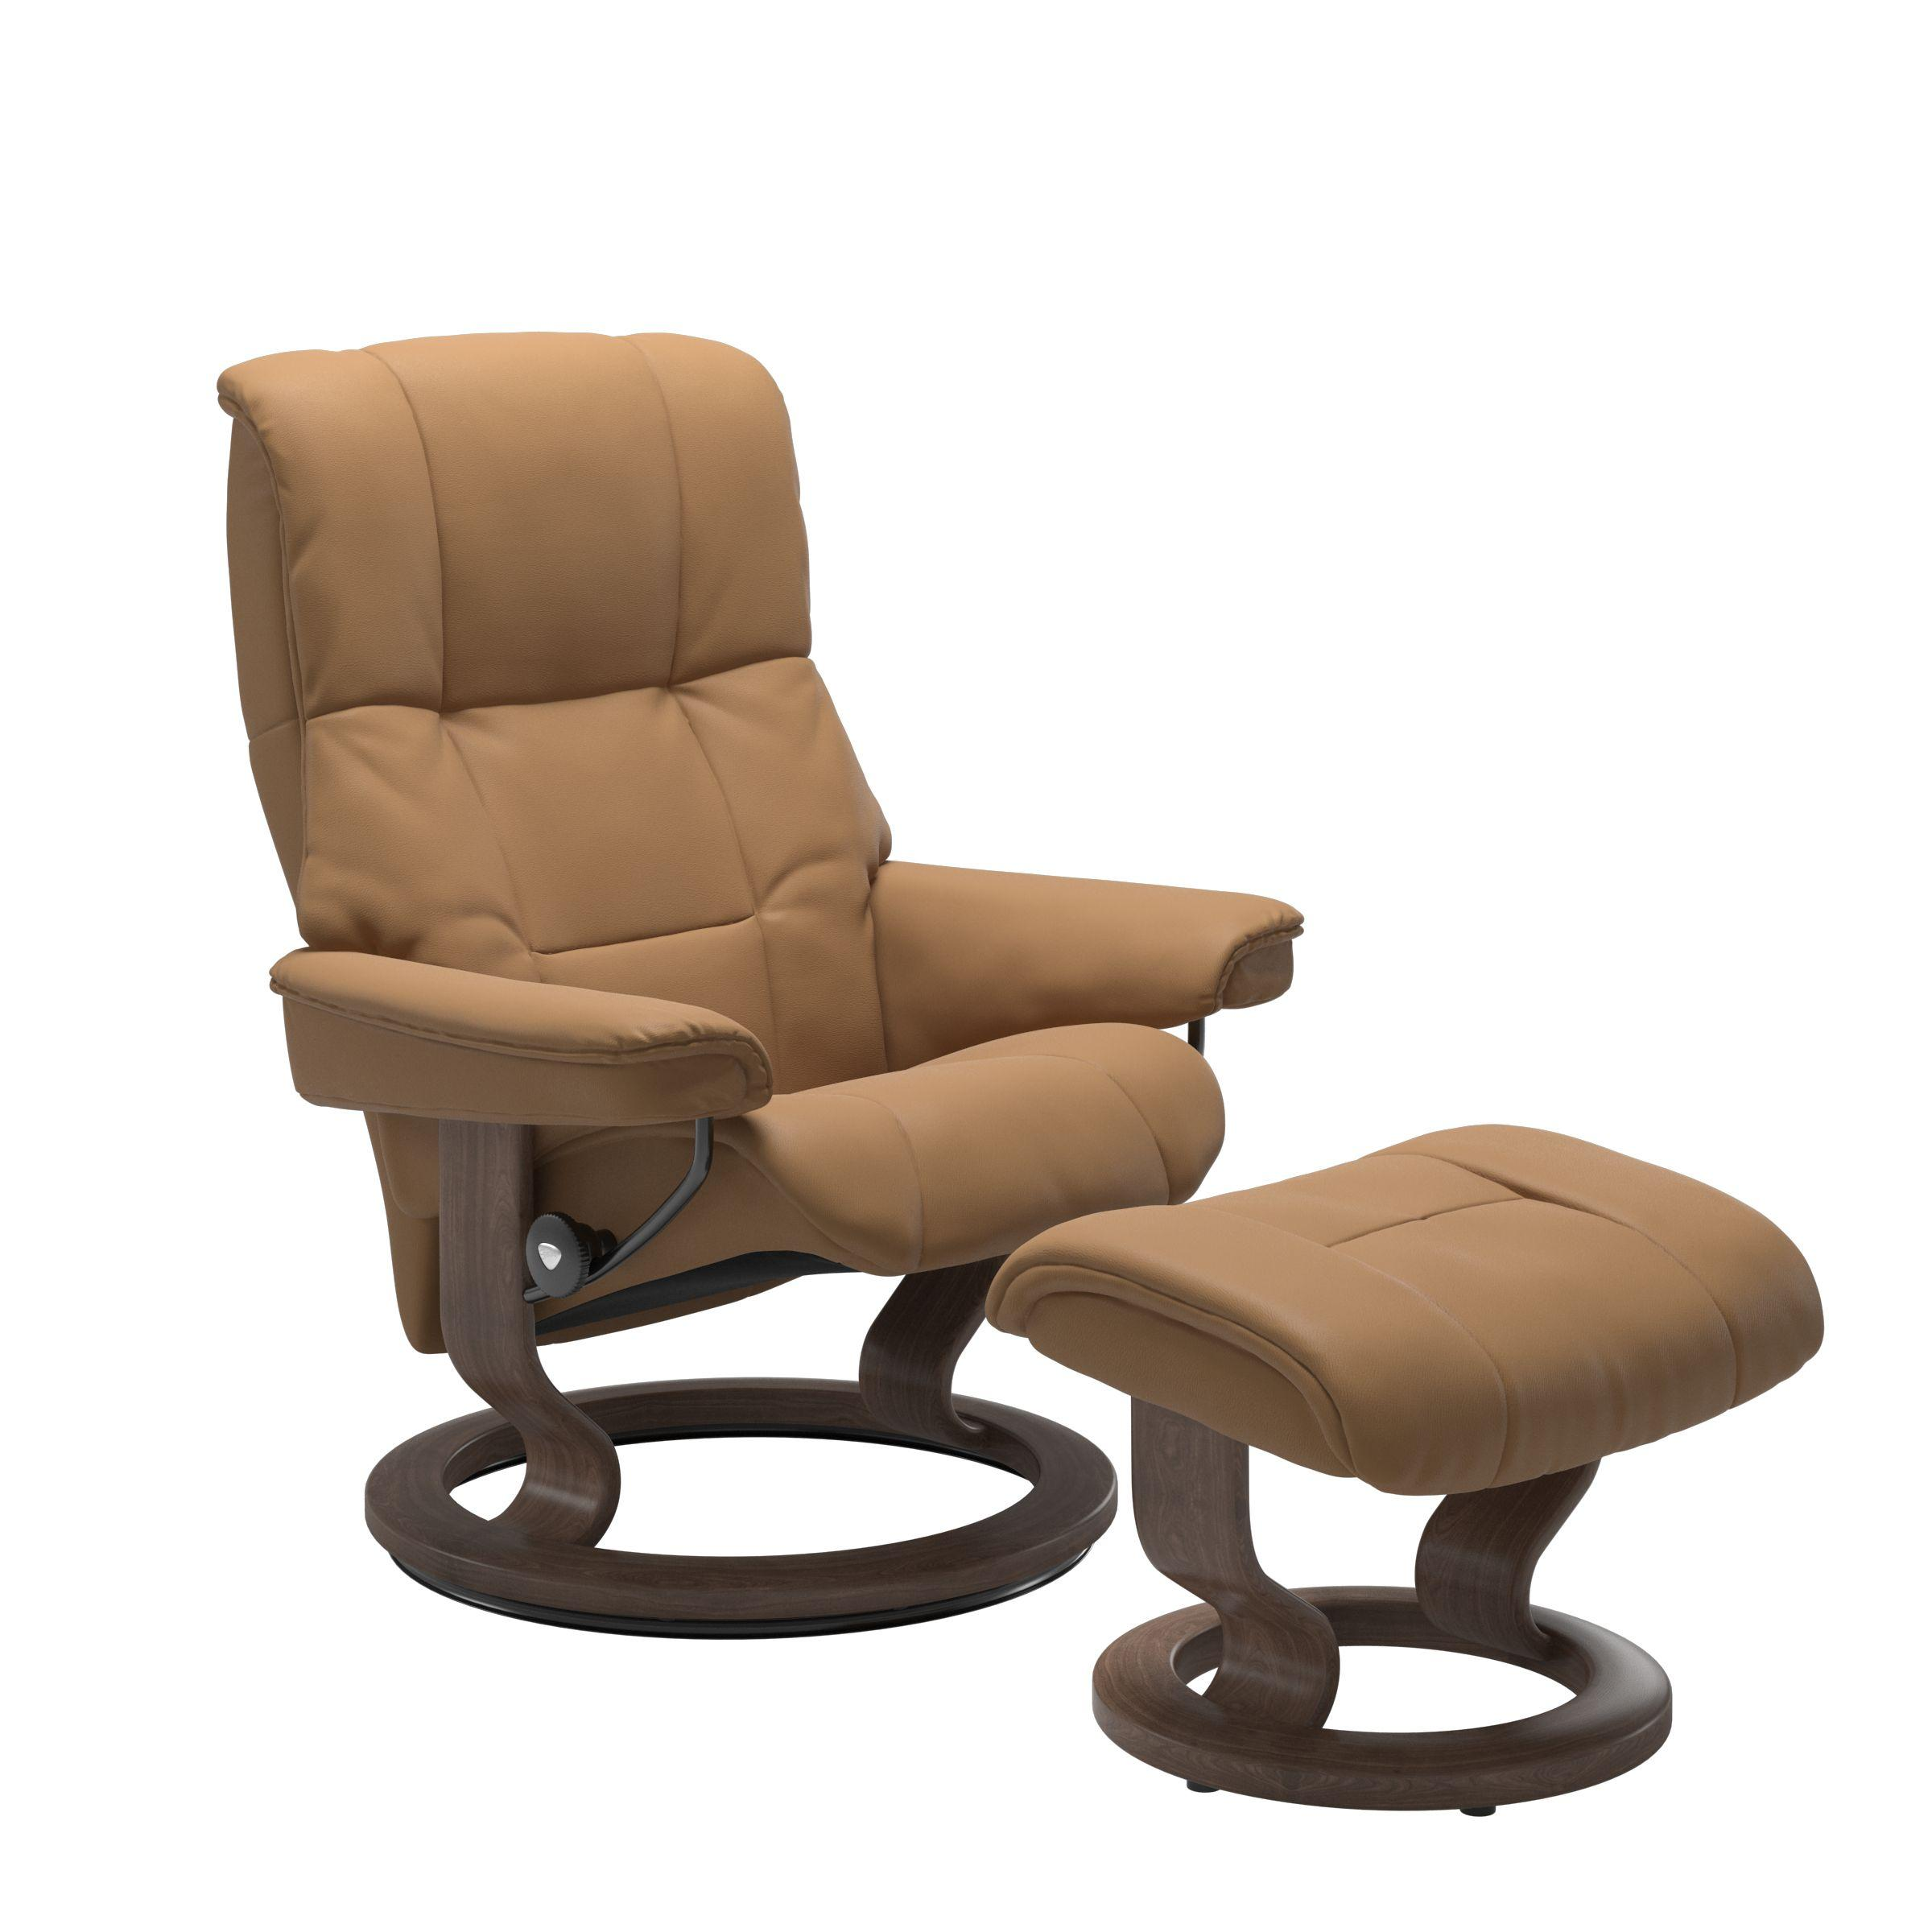 Stressless By EkornesStressless Mayfair Small Classic Base Chair And Ottoman